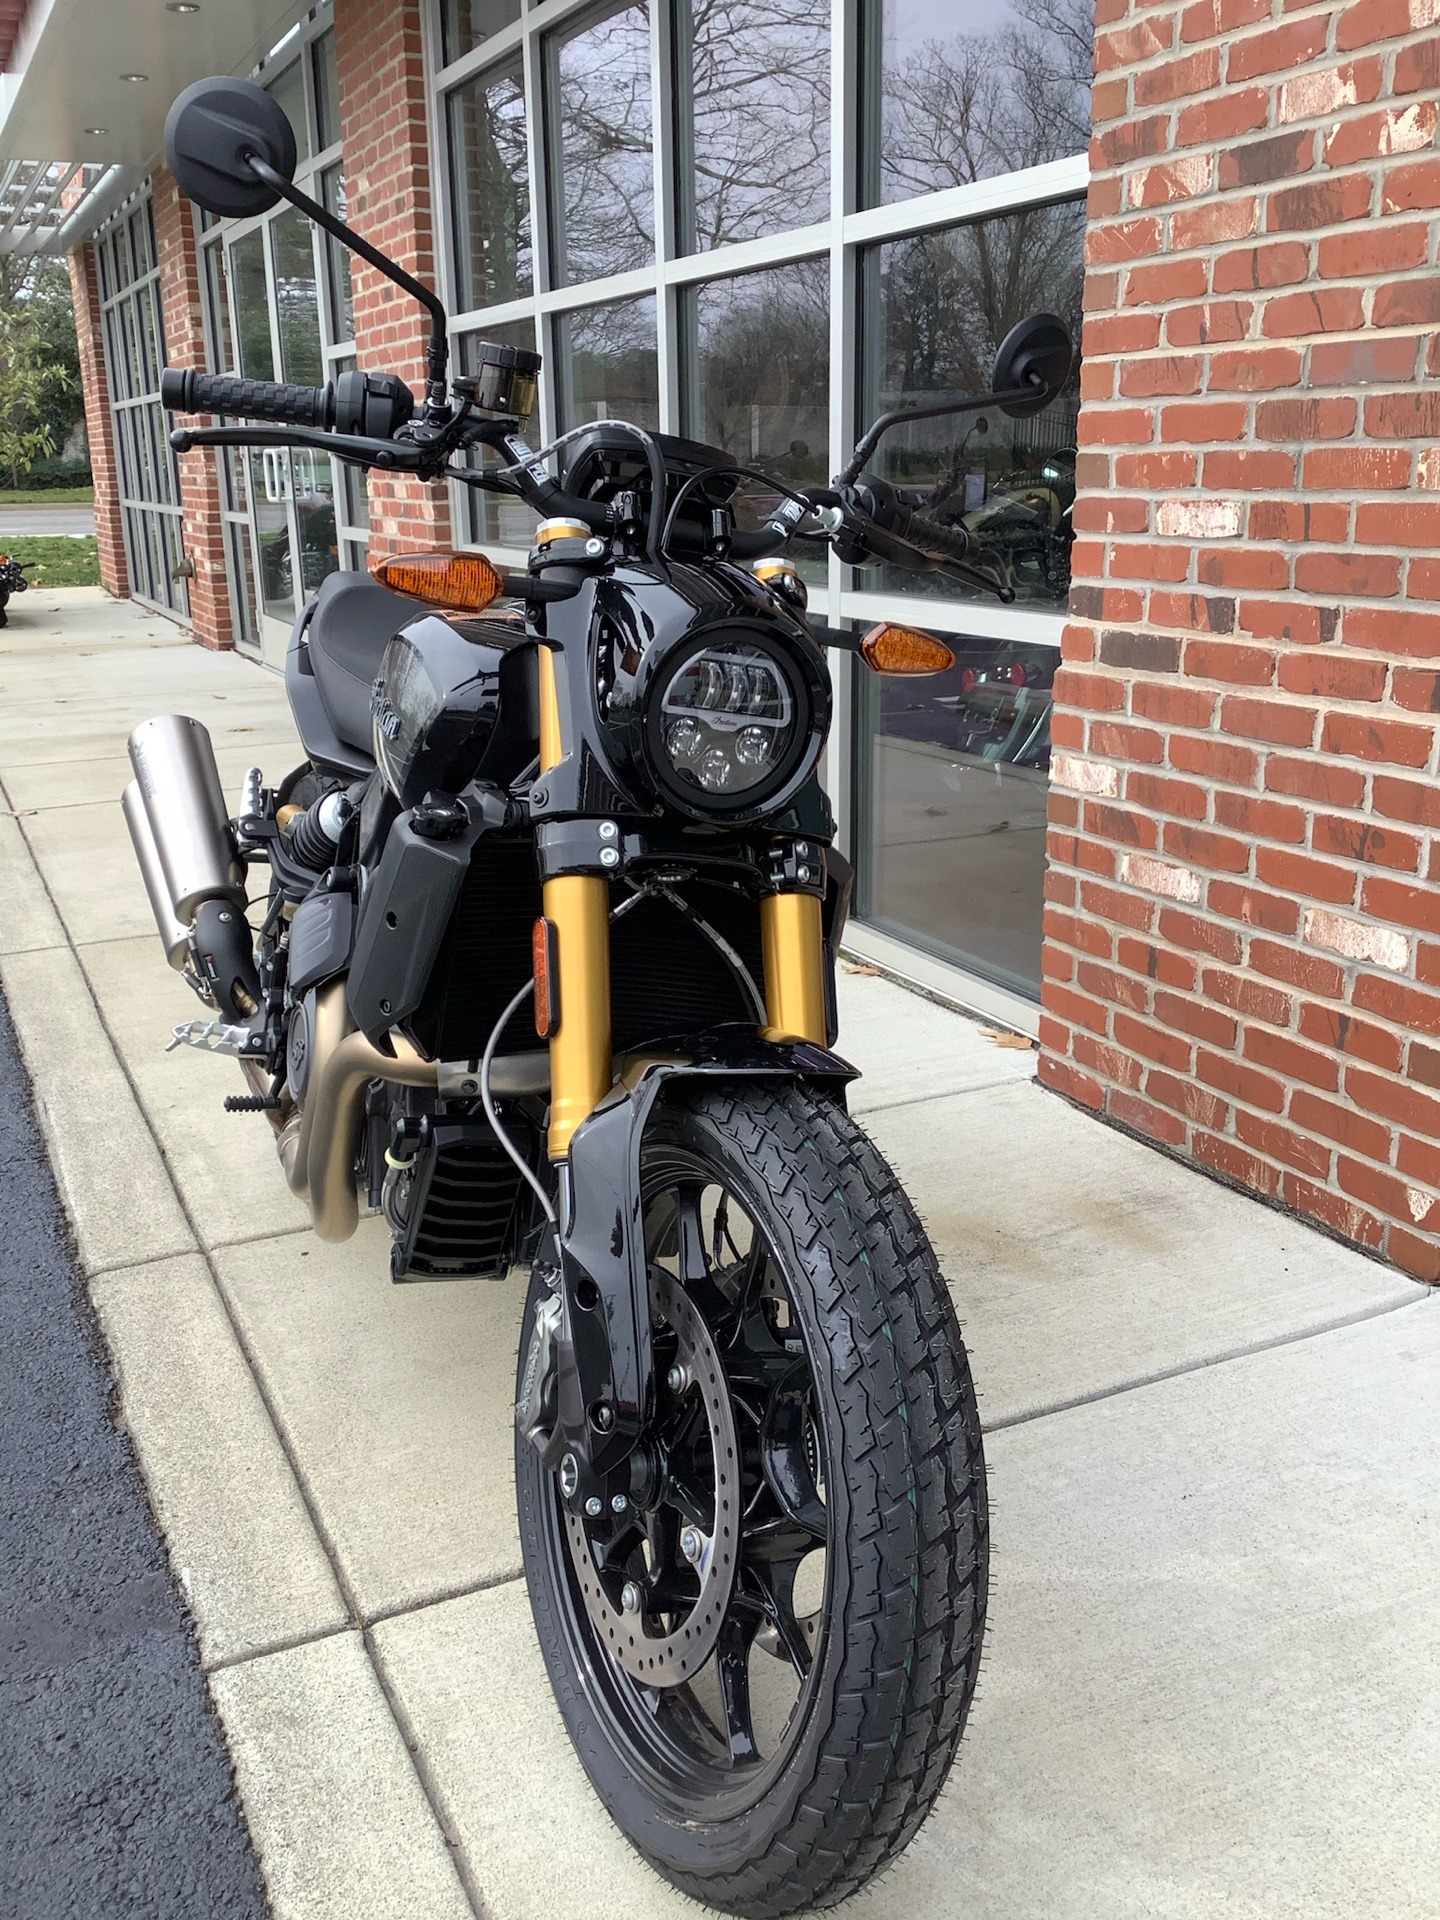 2019 Indian FTR™ 1200 S in Newport News, Virginia - Photo 3